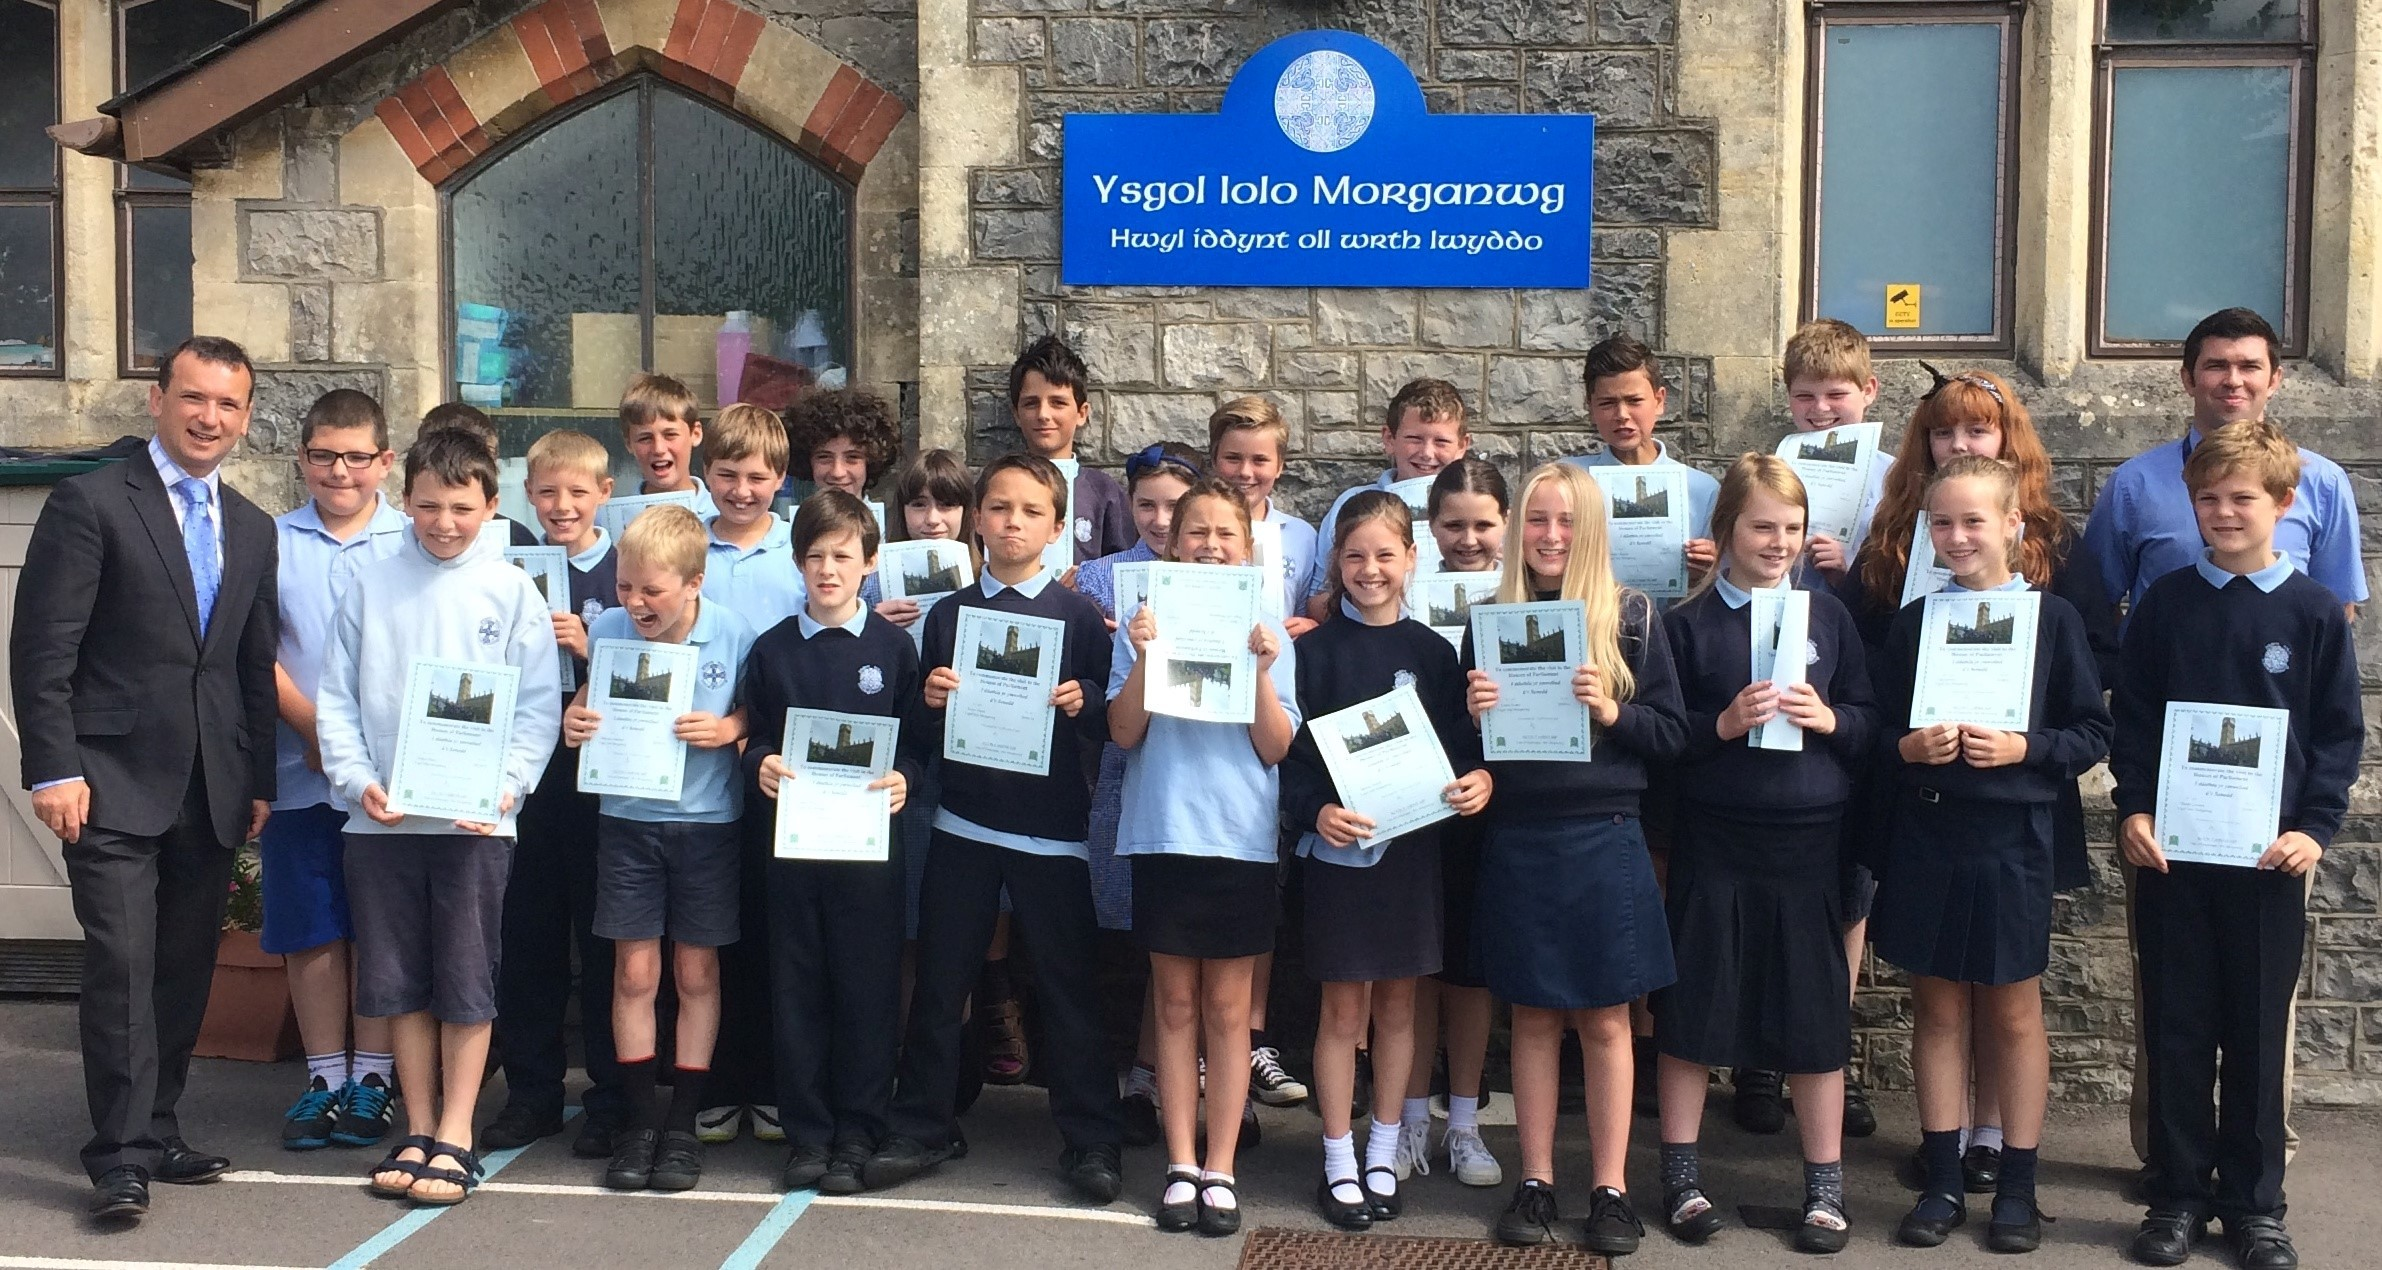 CERTIFICATES: Alun Cairns with Ysgol Iolo Morganwg pupils